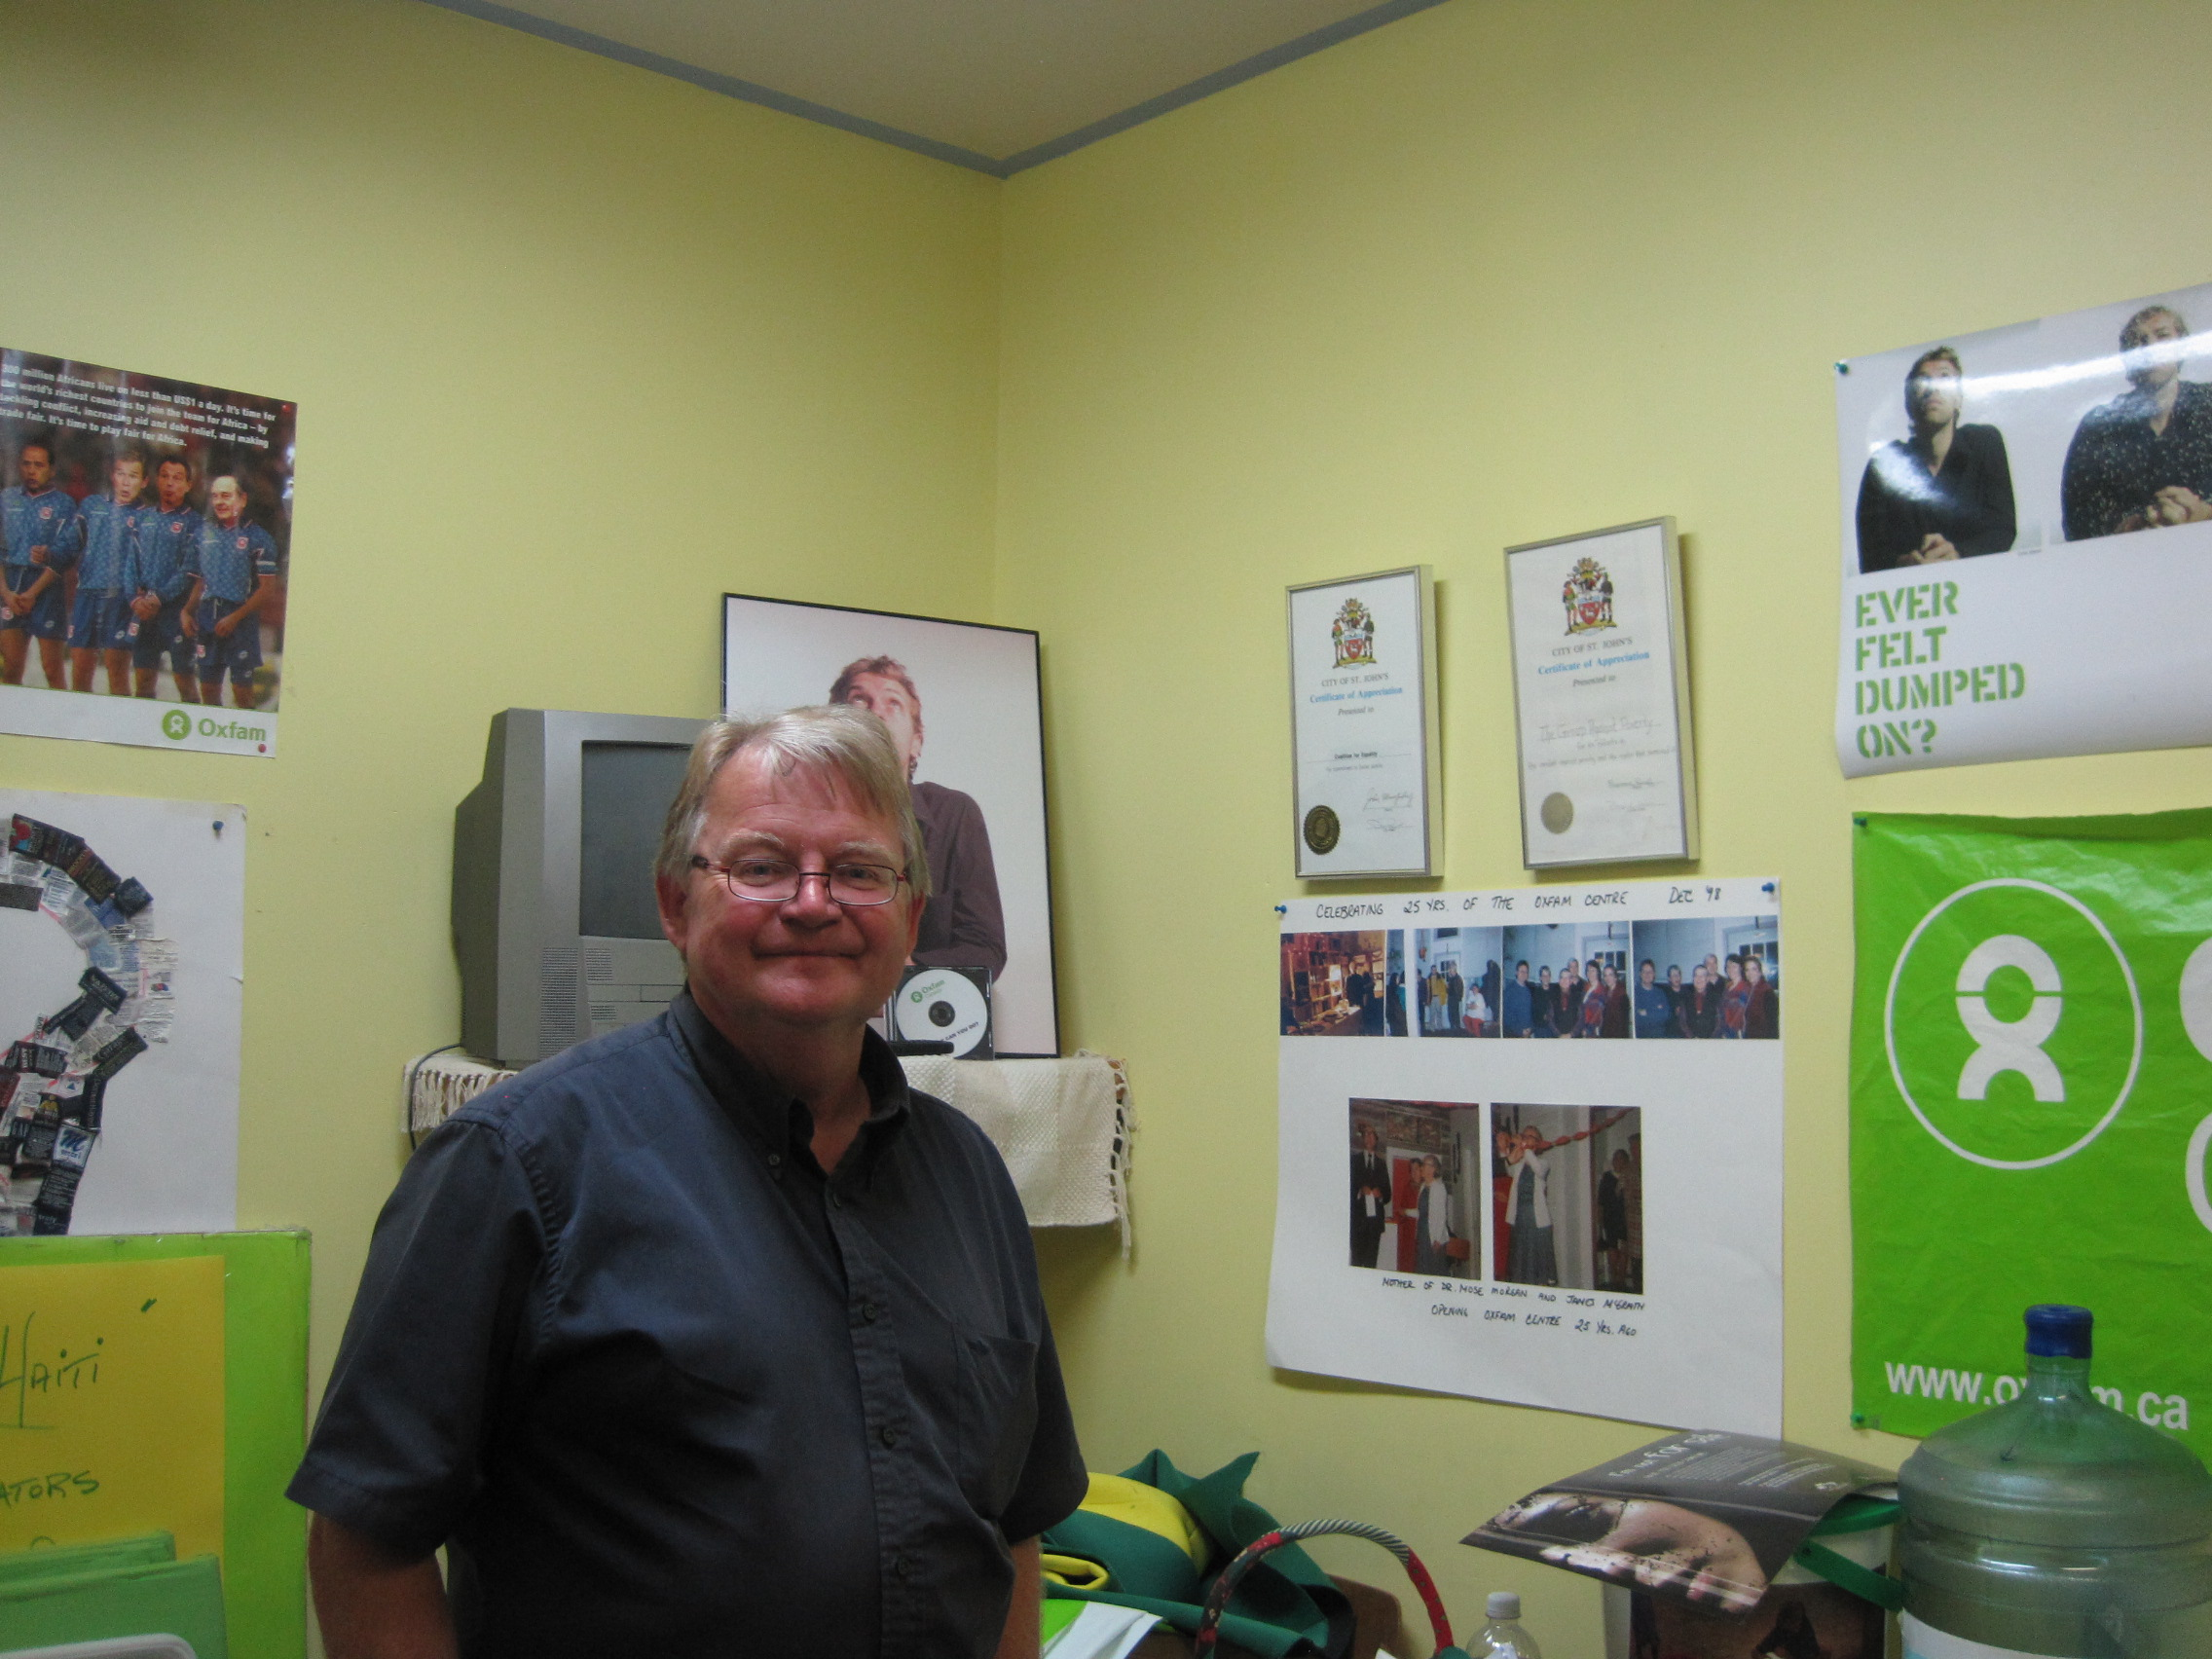 Bill Hynd in the offices of Oxfam St John's , 5 August 2013 when we visited.